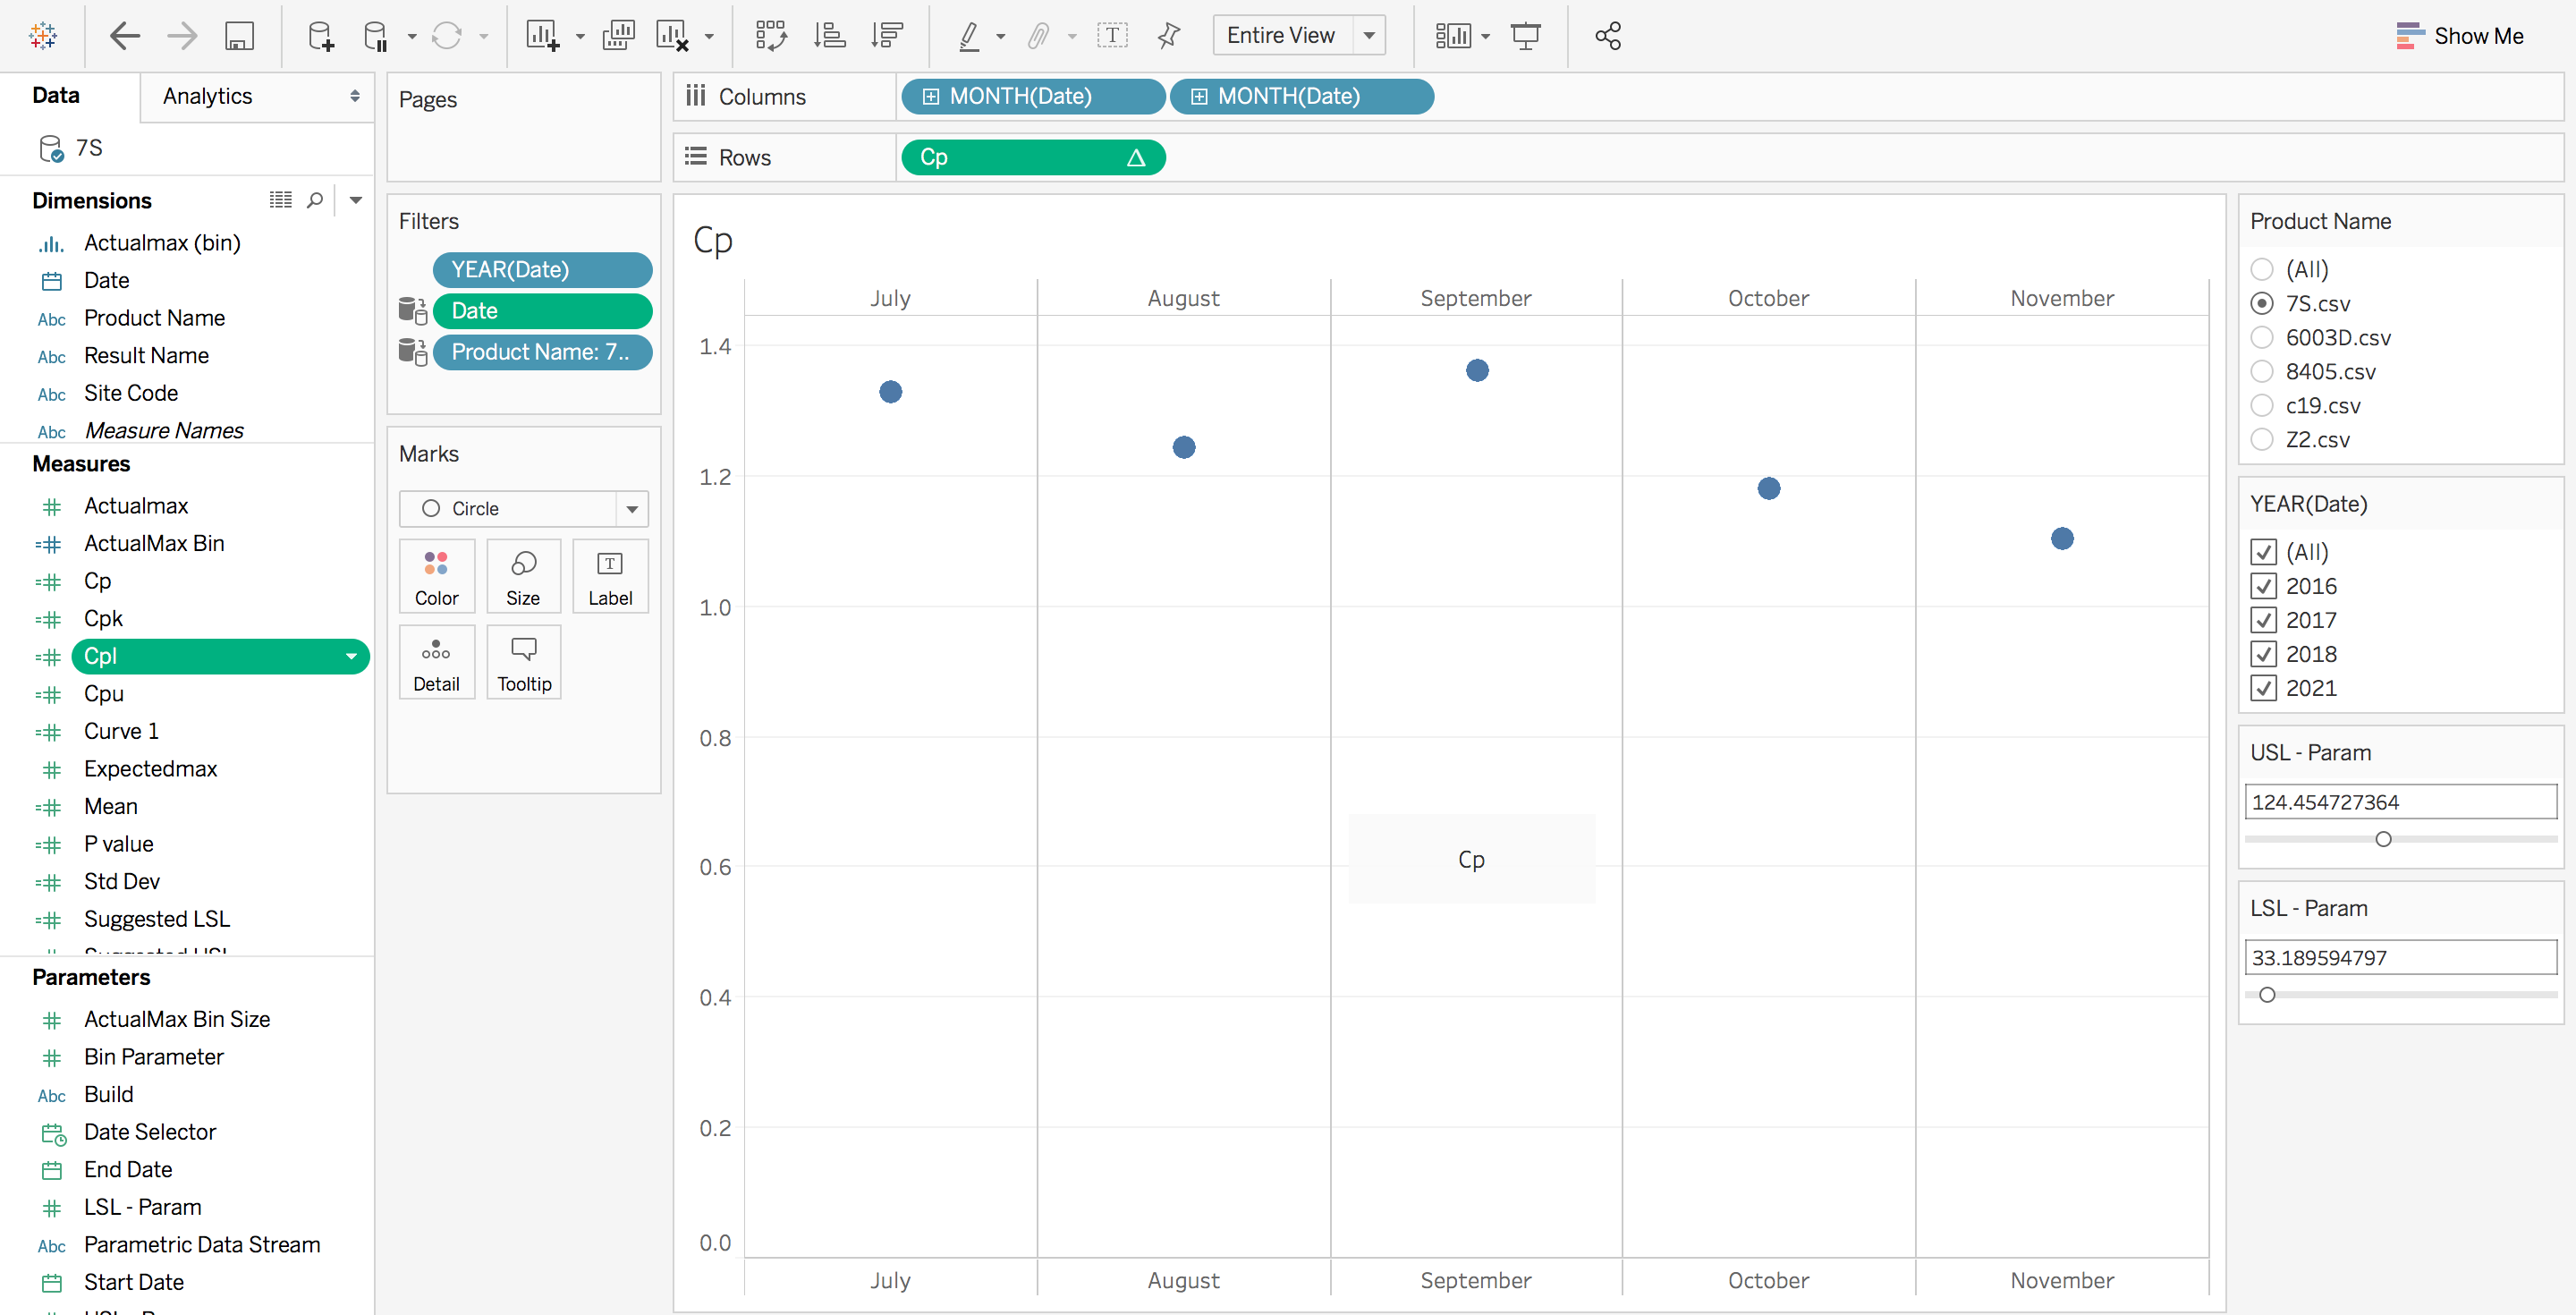 TabPy 'List Index Out Of Range' · Issue #81 · tableau/TabPy · GitHub